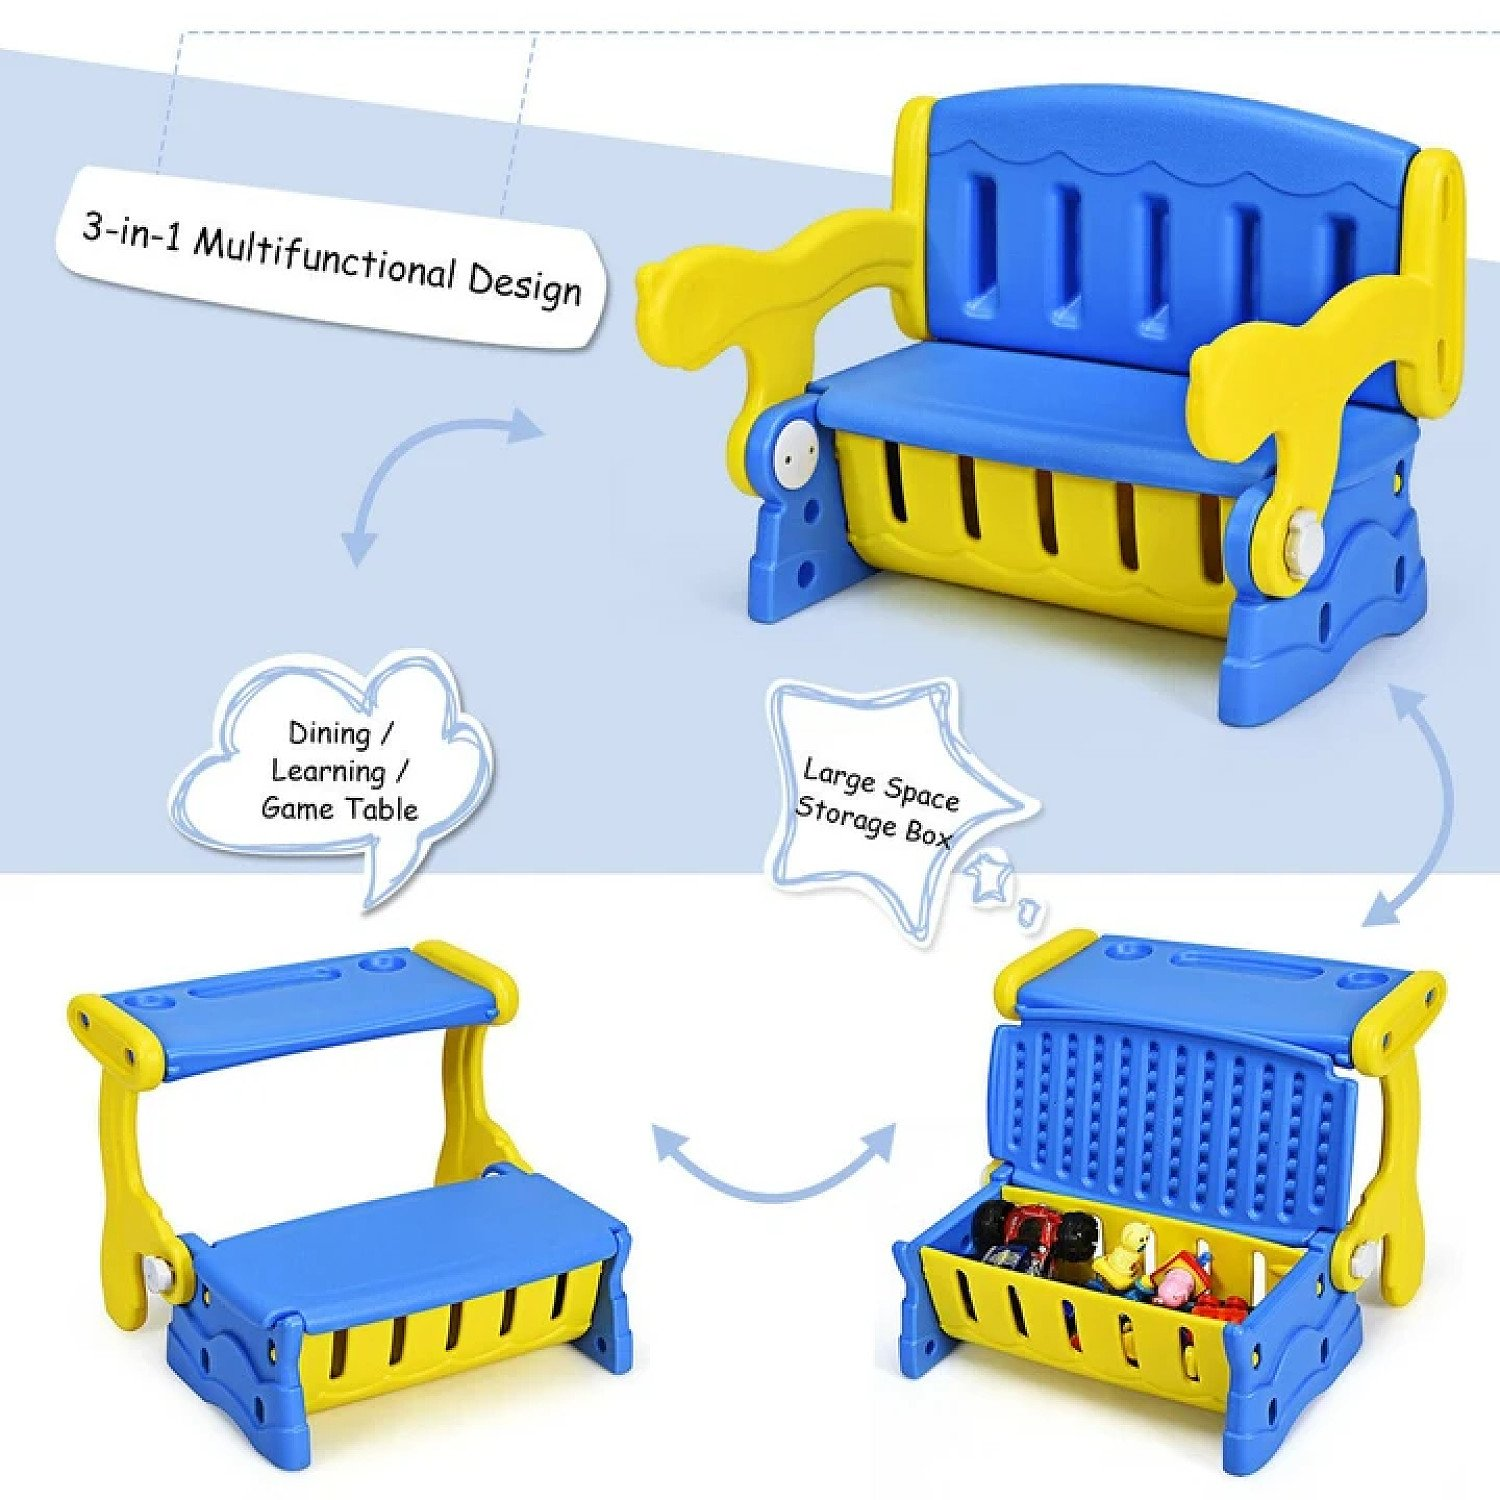 3-in-1 Multifunction Children's convertible Bench, Desk with Storage Free Postage